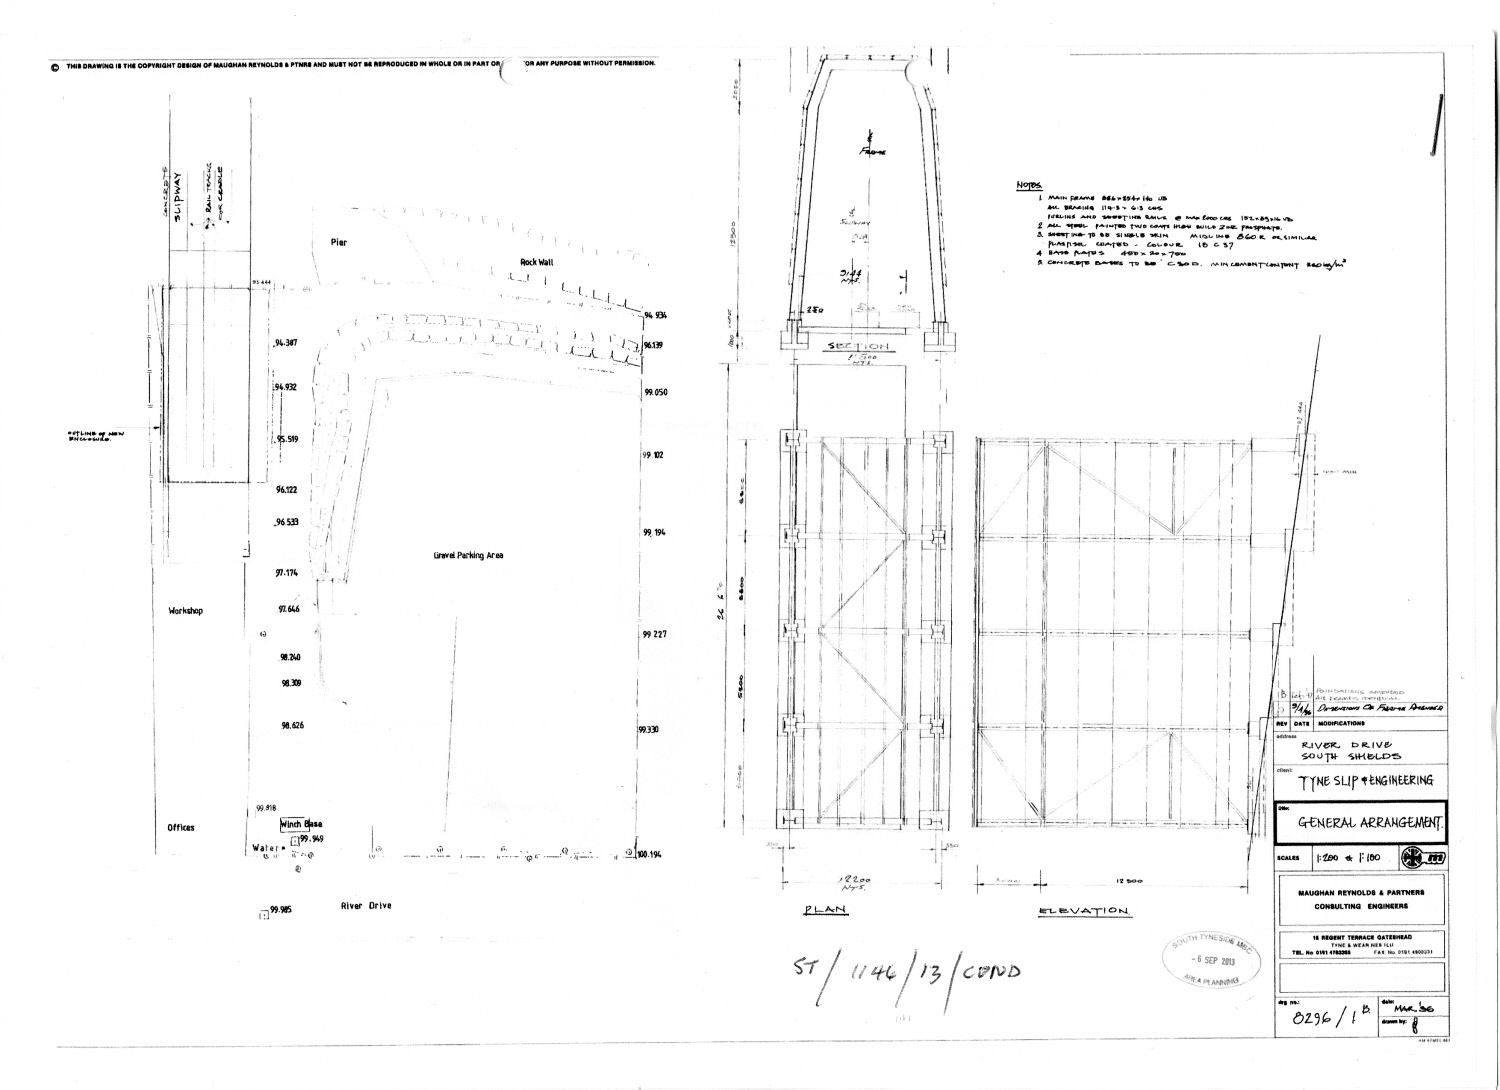 1500x1090 Non Approved Drawing 82961b Harbour View